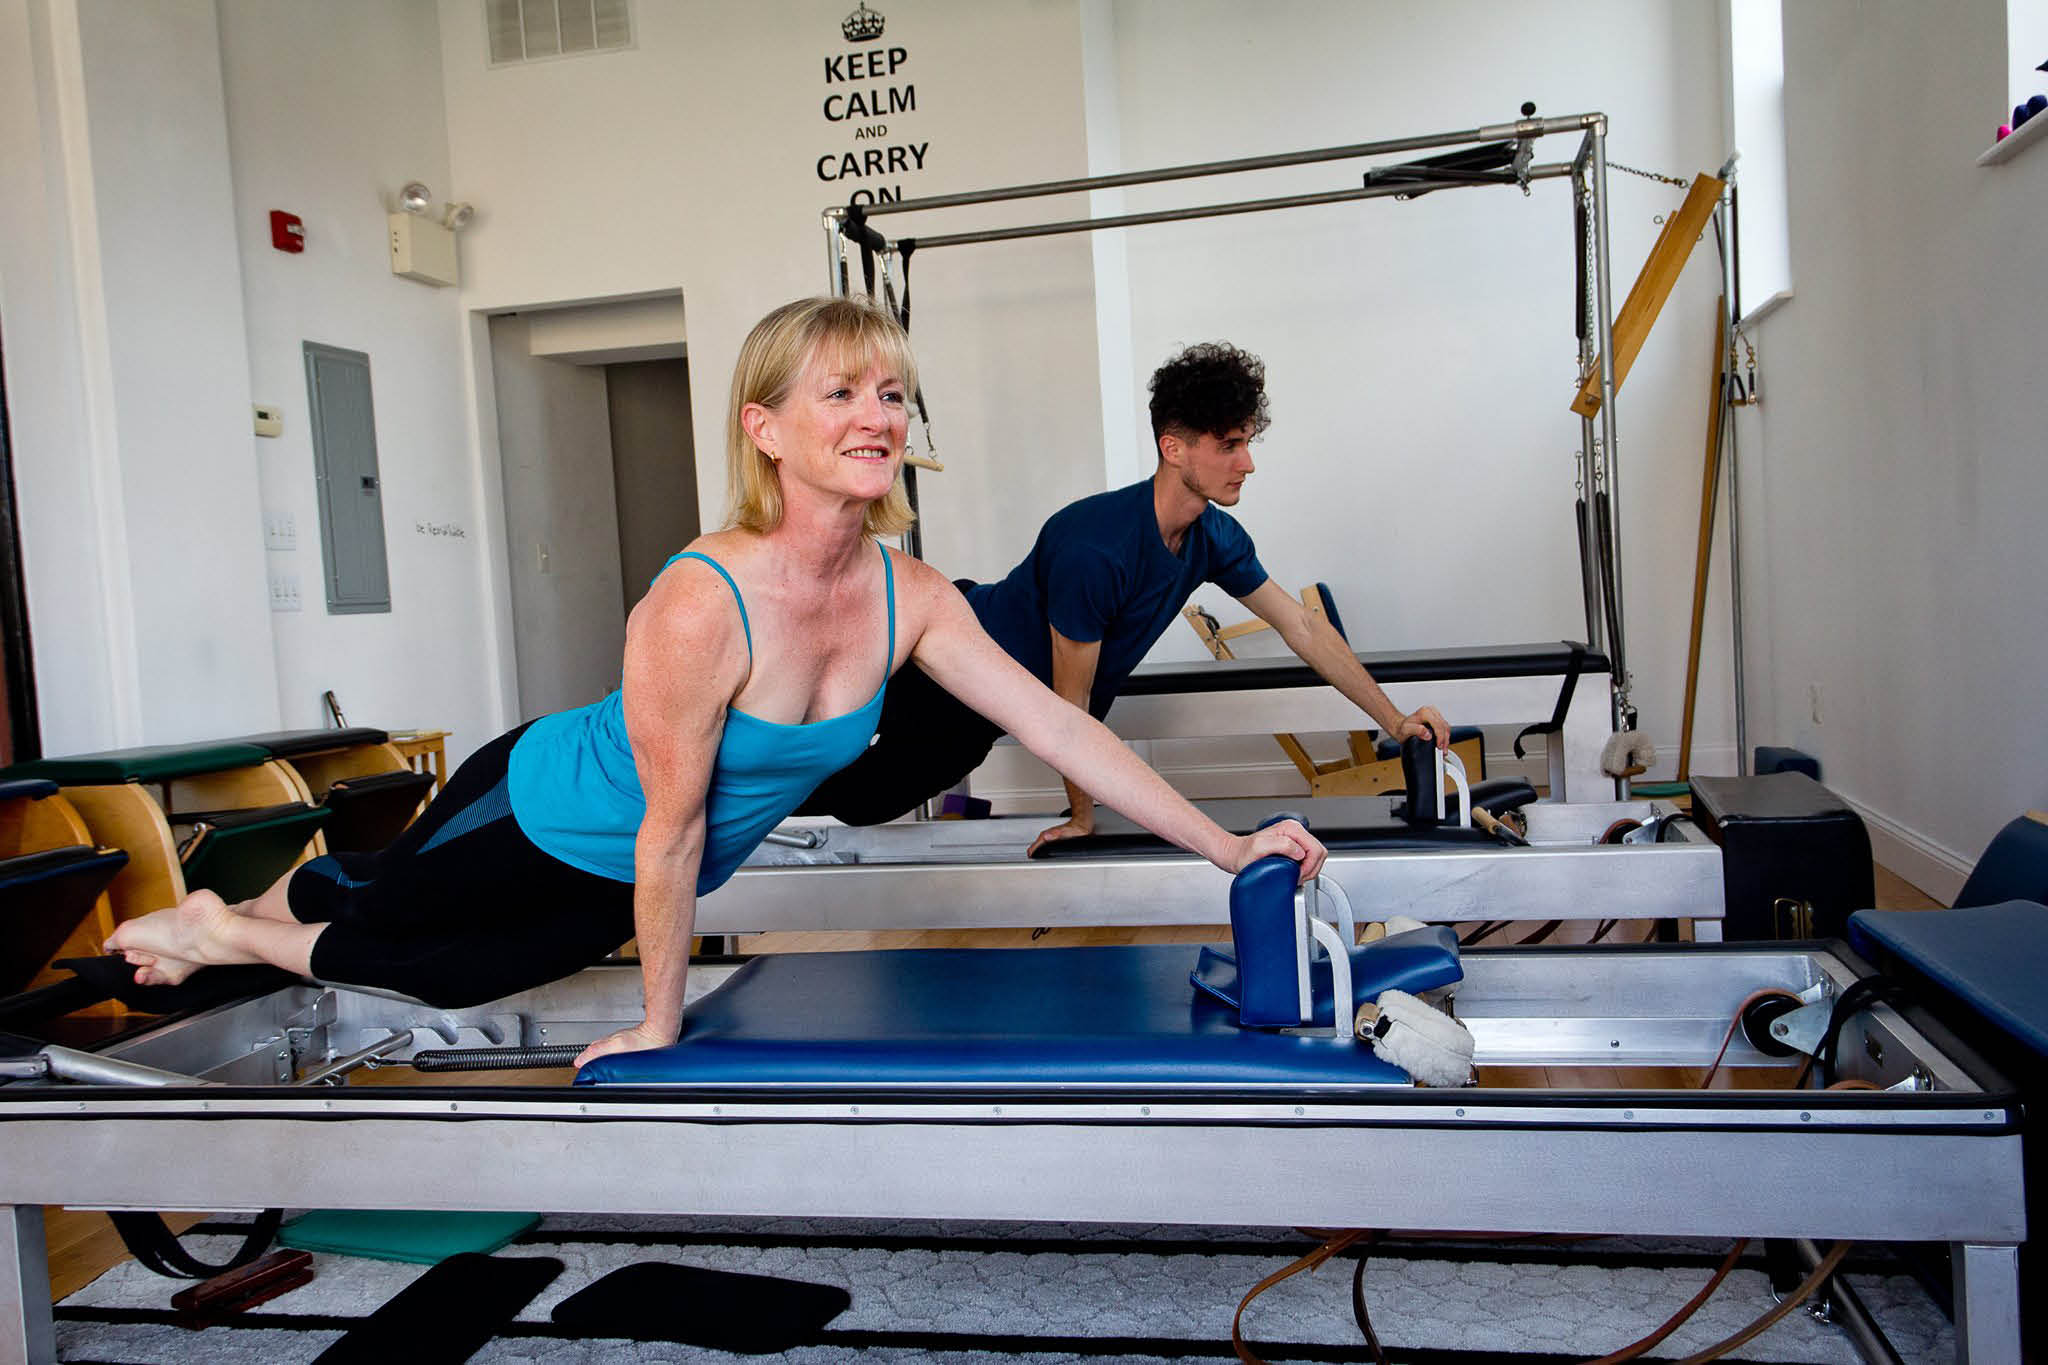 june hines pilates, fitness, pilates,exercise,flexibility,mat,classes,private,lessons,group,pilates,strength,training